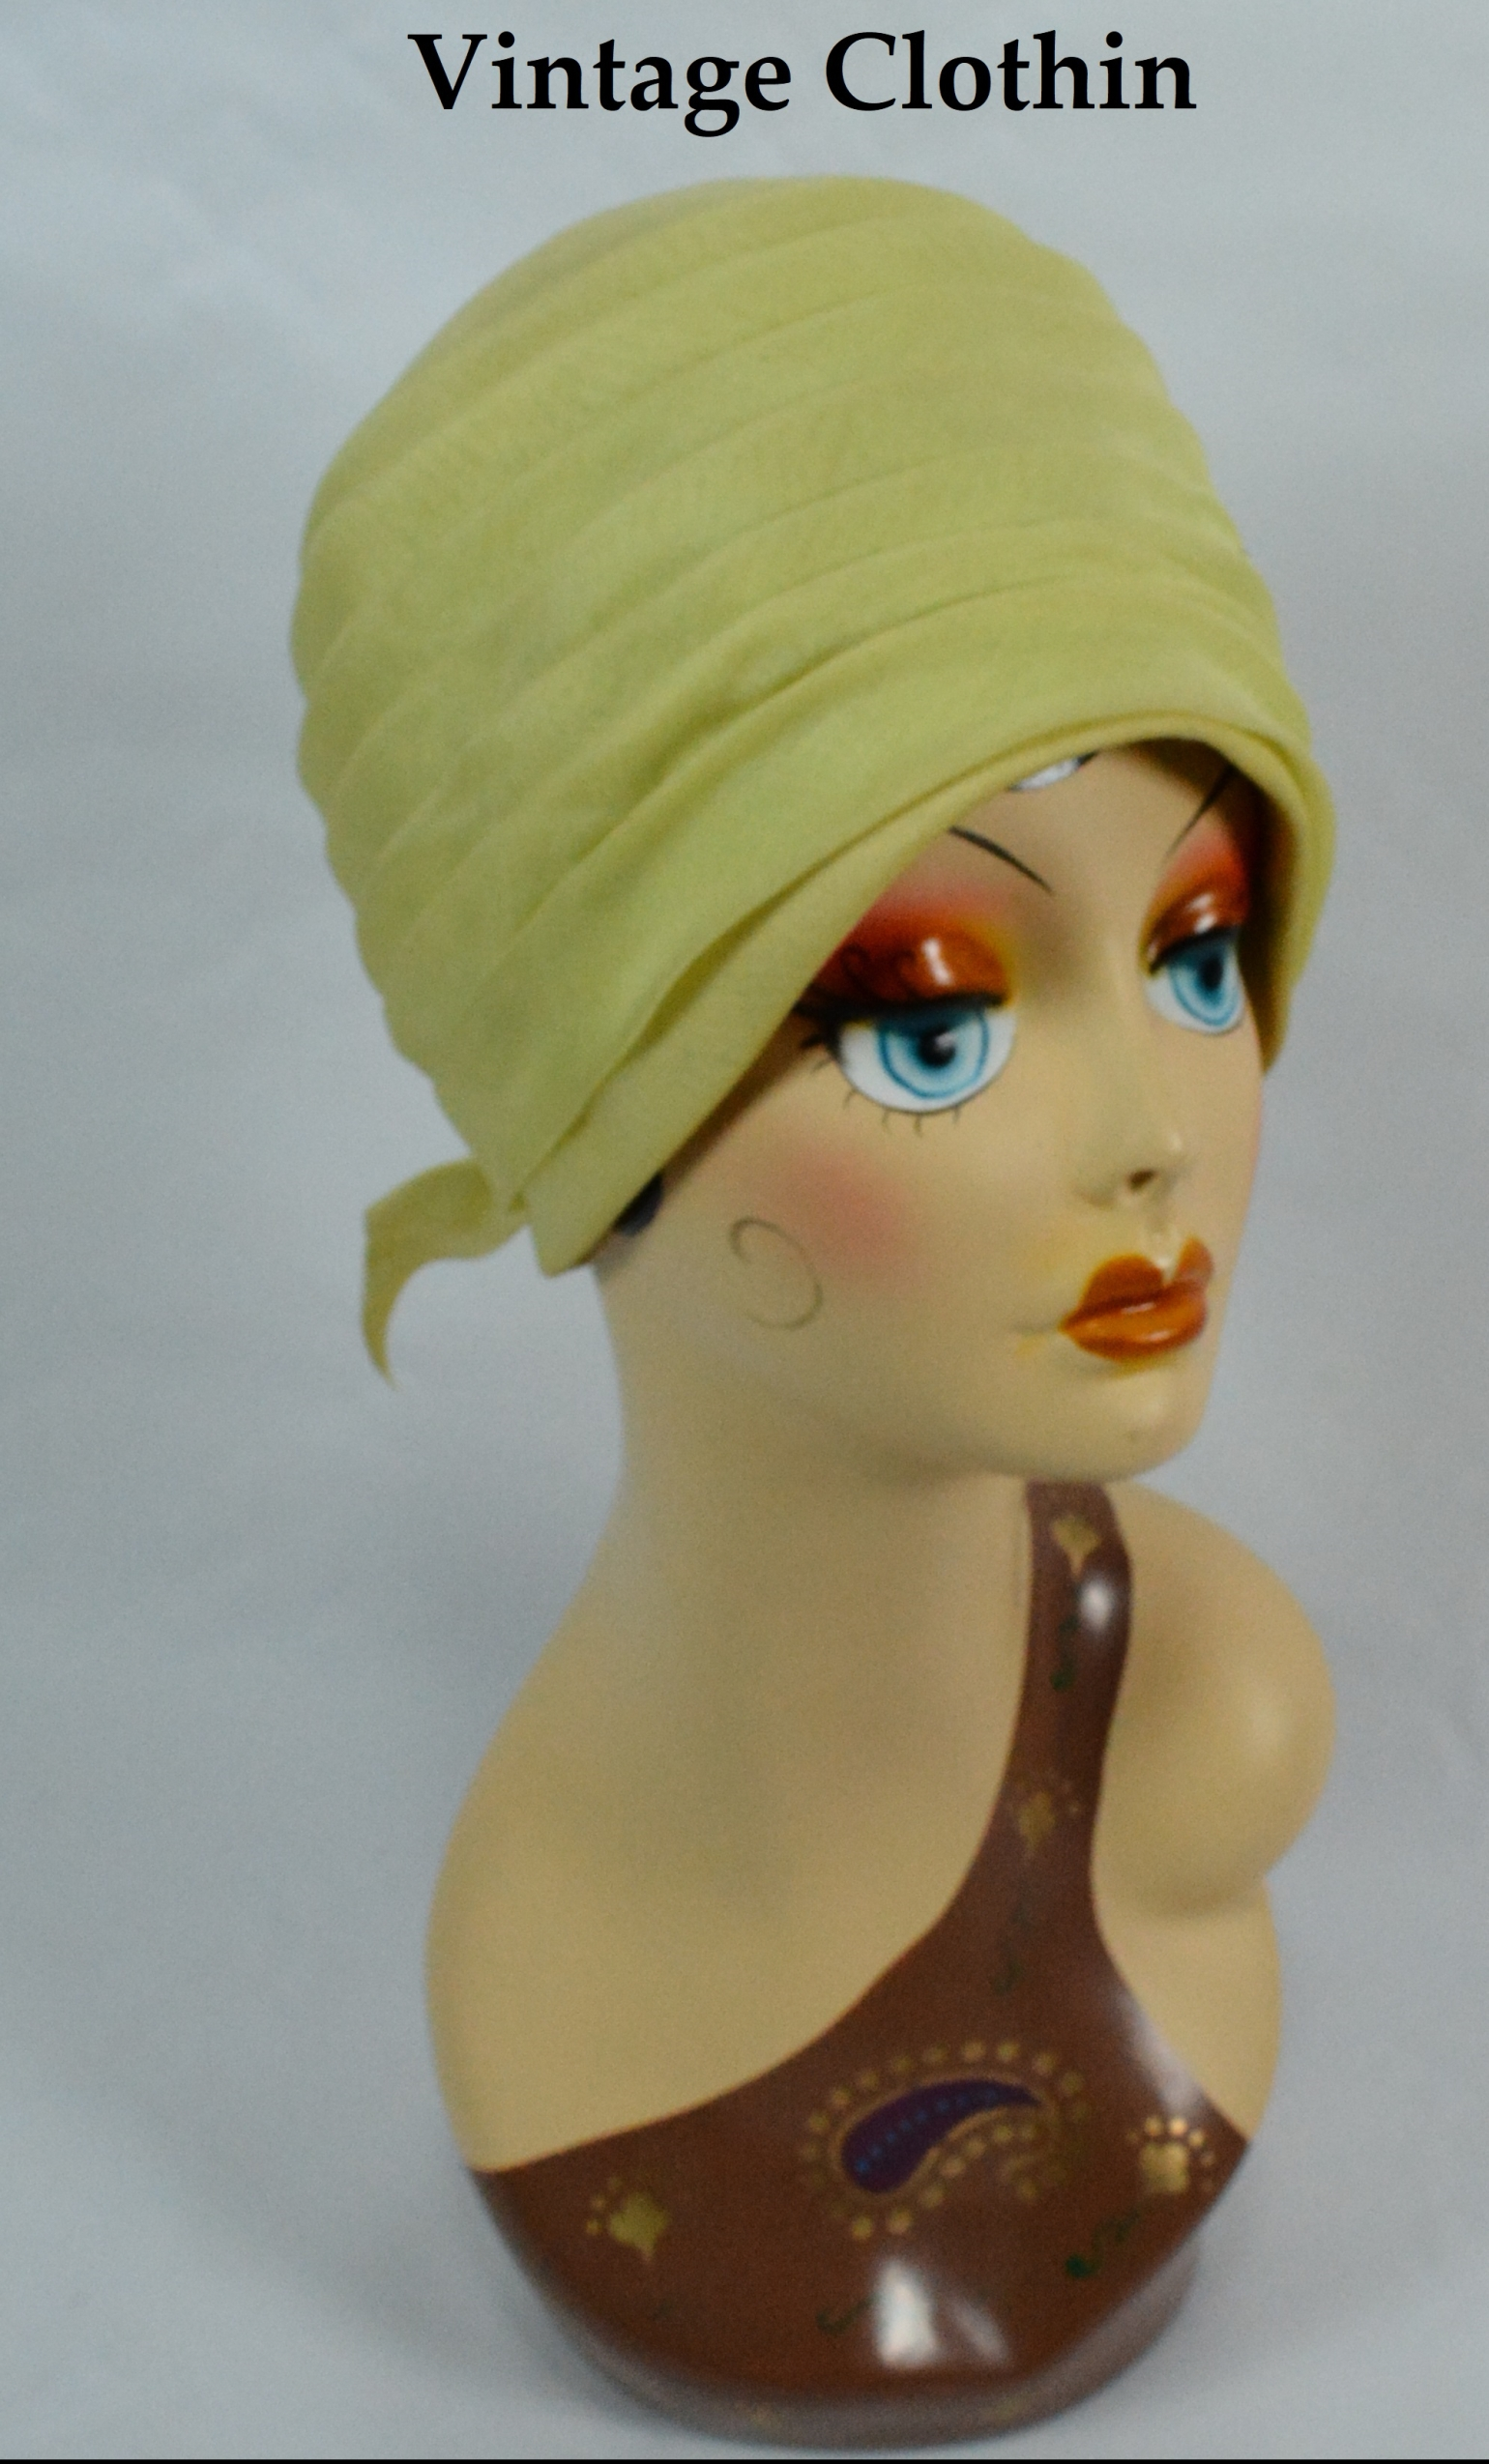 1960's Tall Pillbox / Turban Topper Hat Made by Vogue Hats